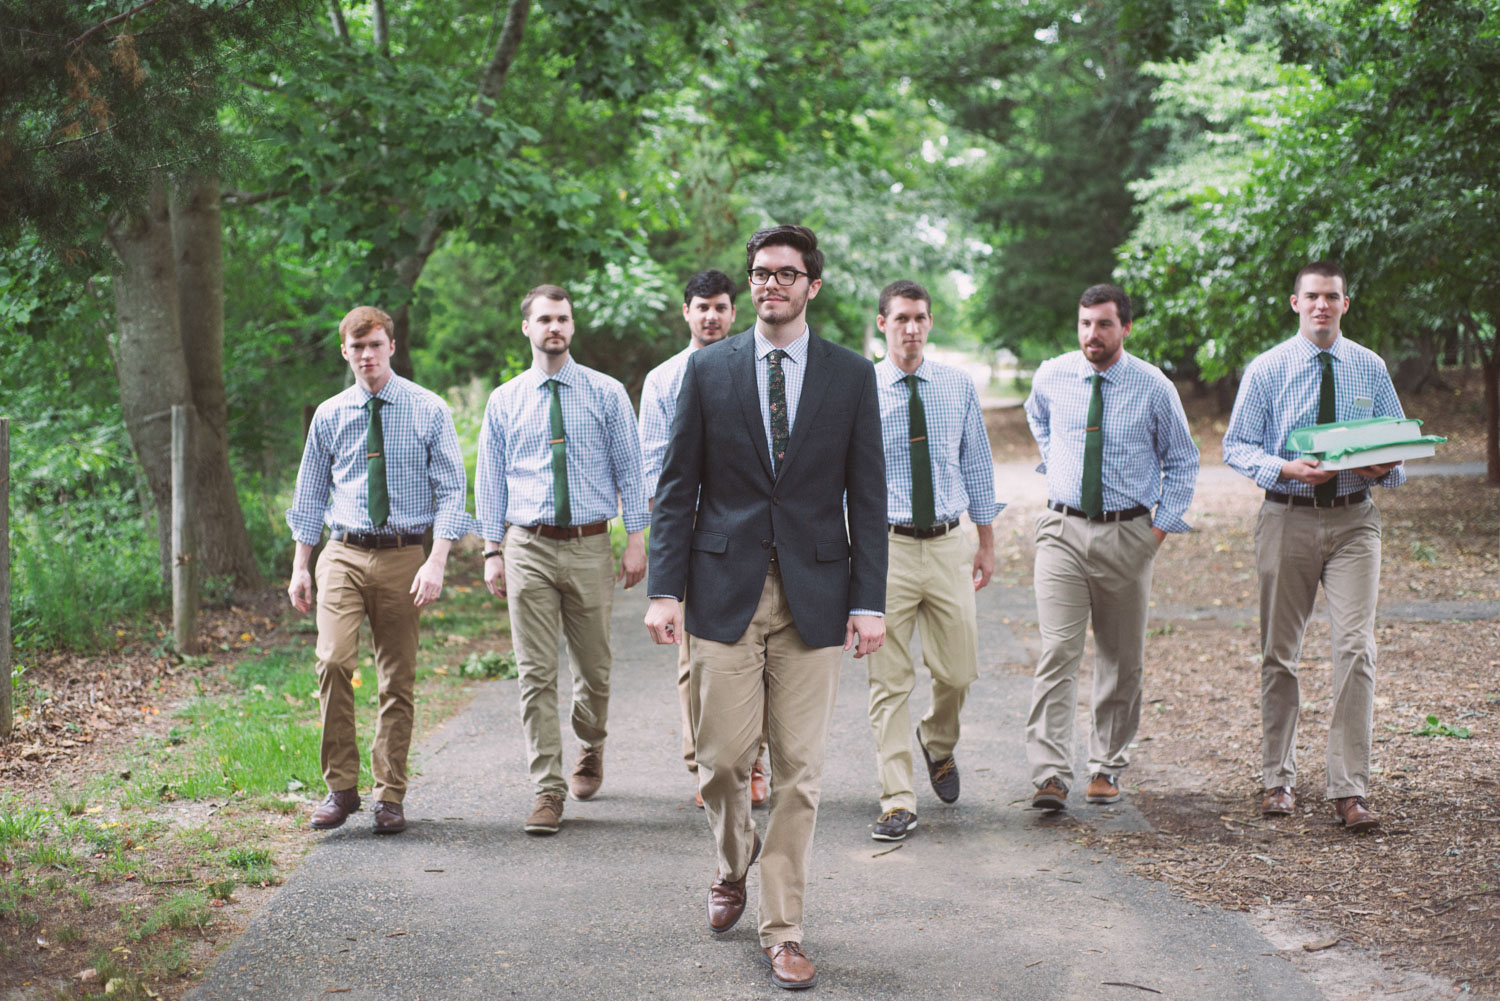 Planning for the Groomsmen Getting Ready Photos | Vlog